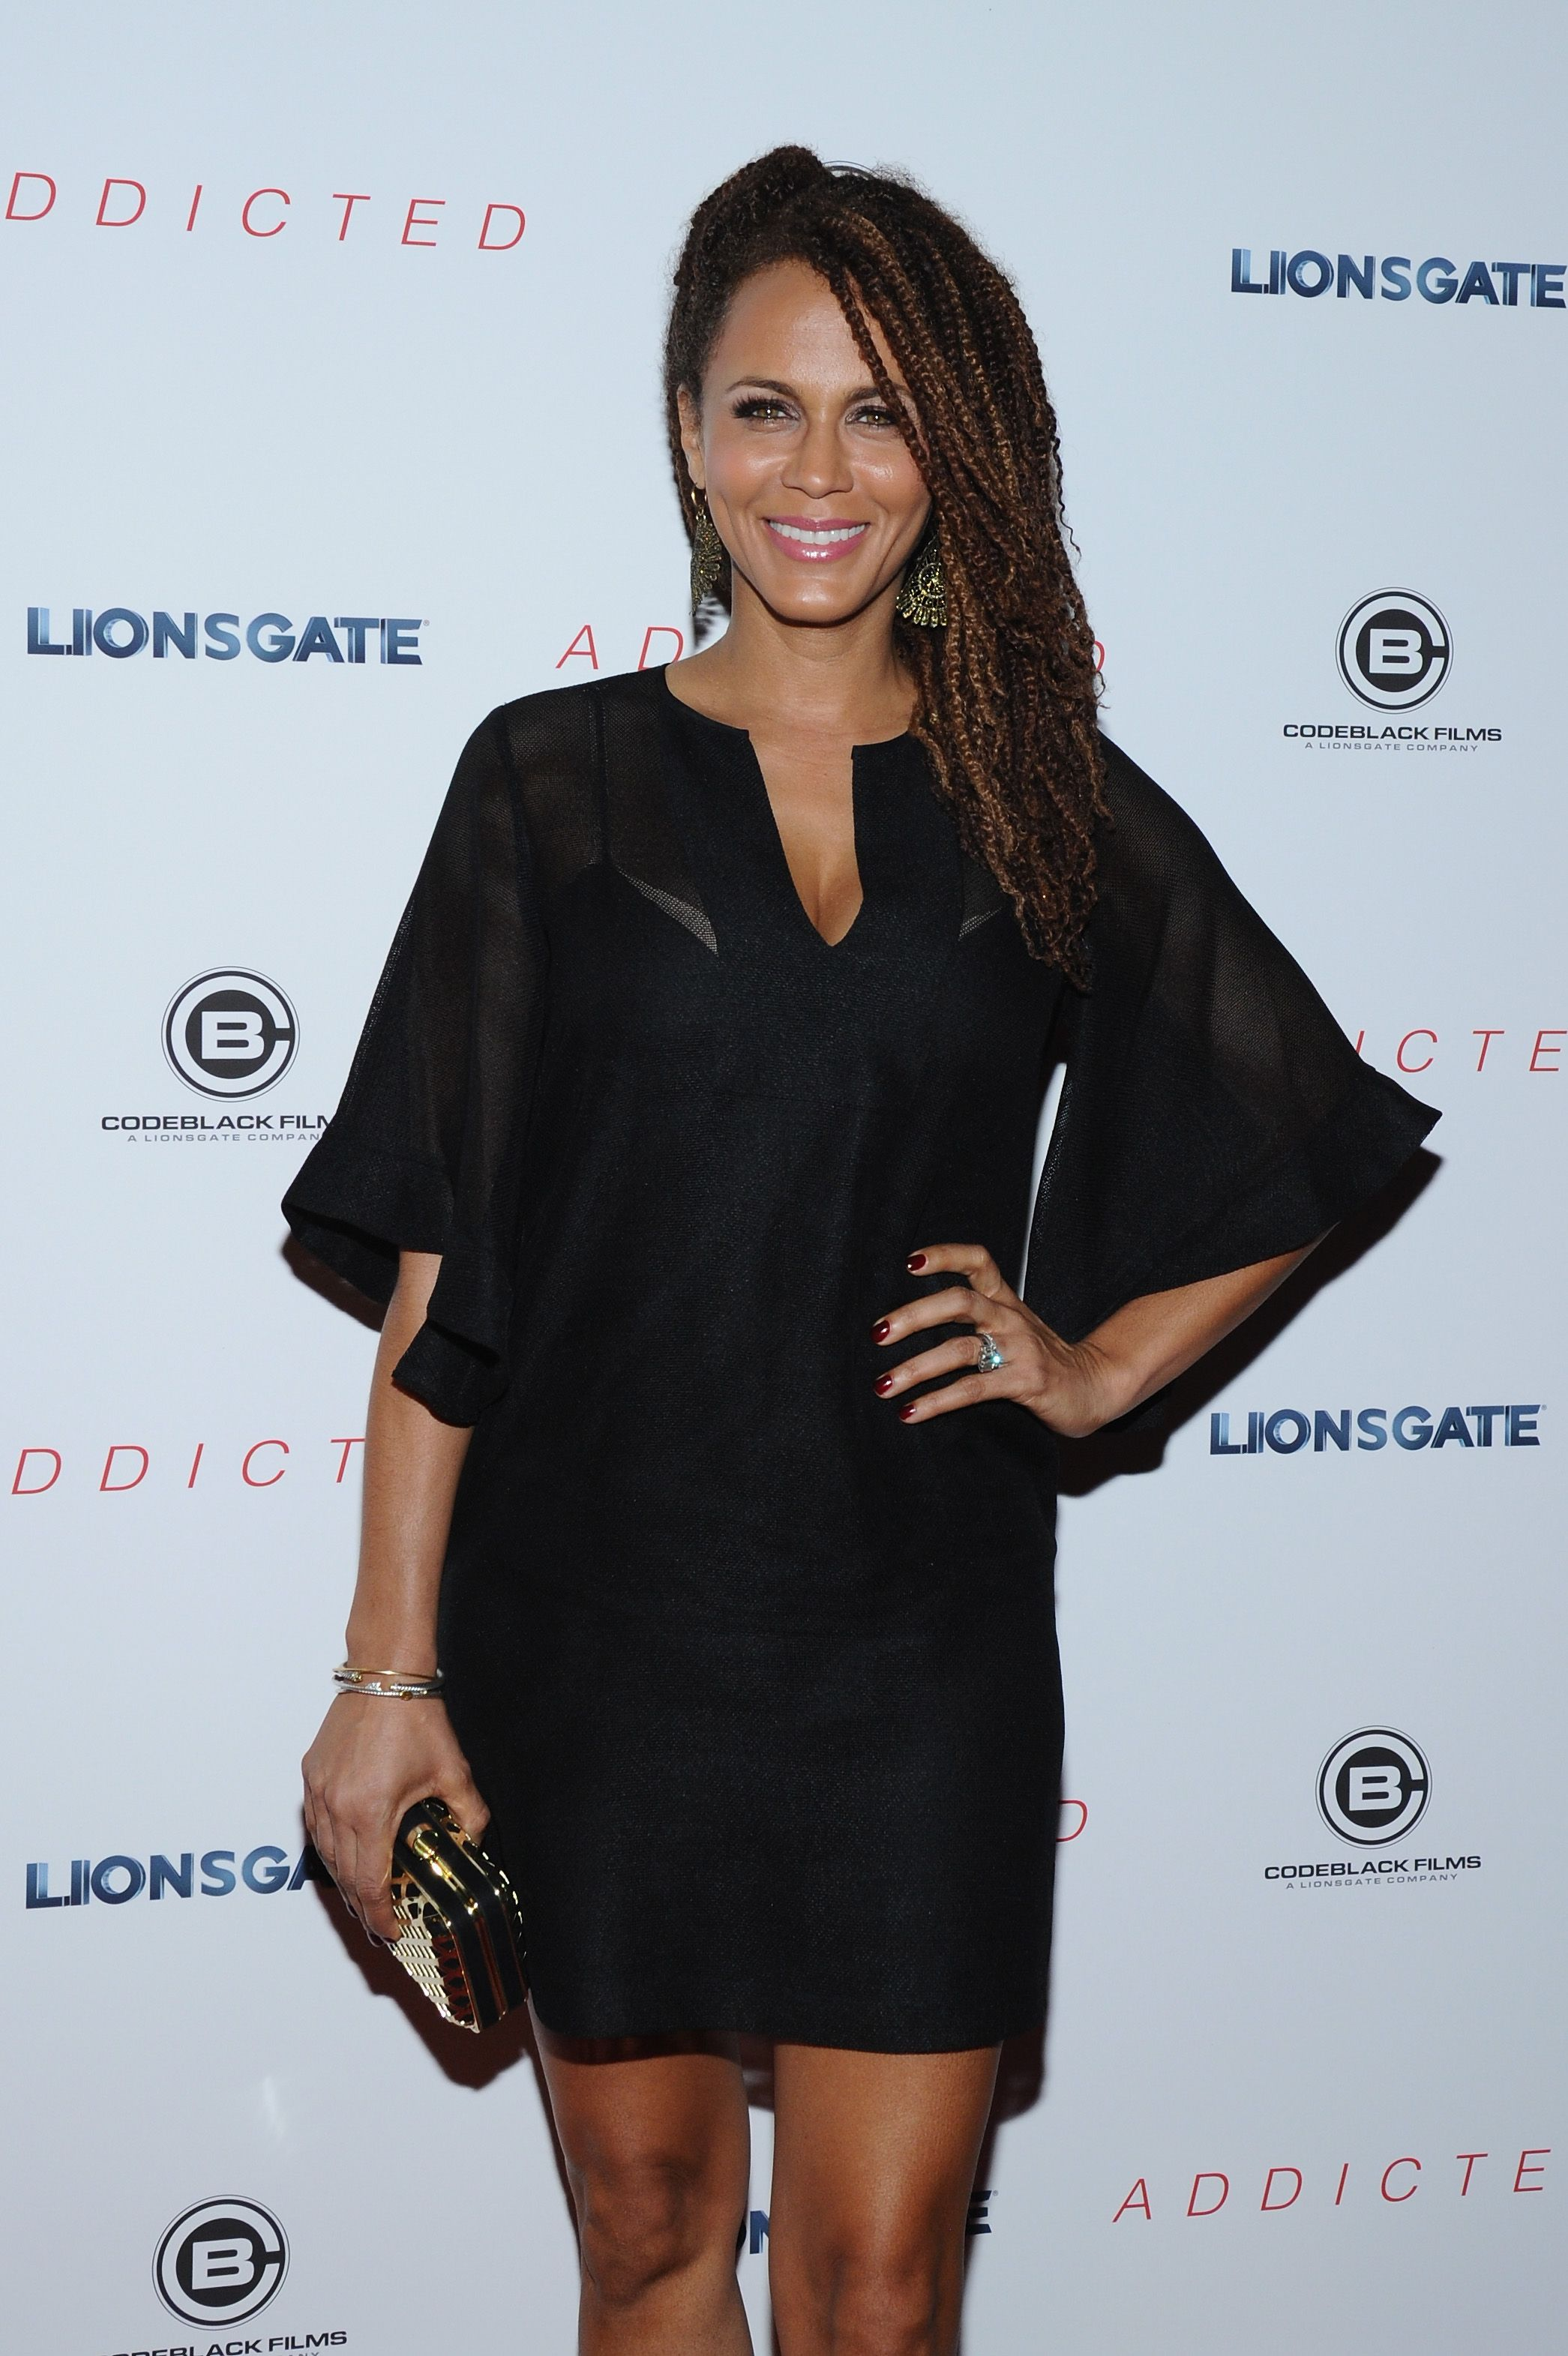 """Nicole Ari Parker attends the premiere of """"Addicted"""" on October 8, 2014 in New York. 